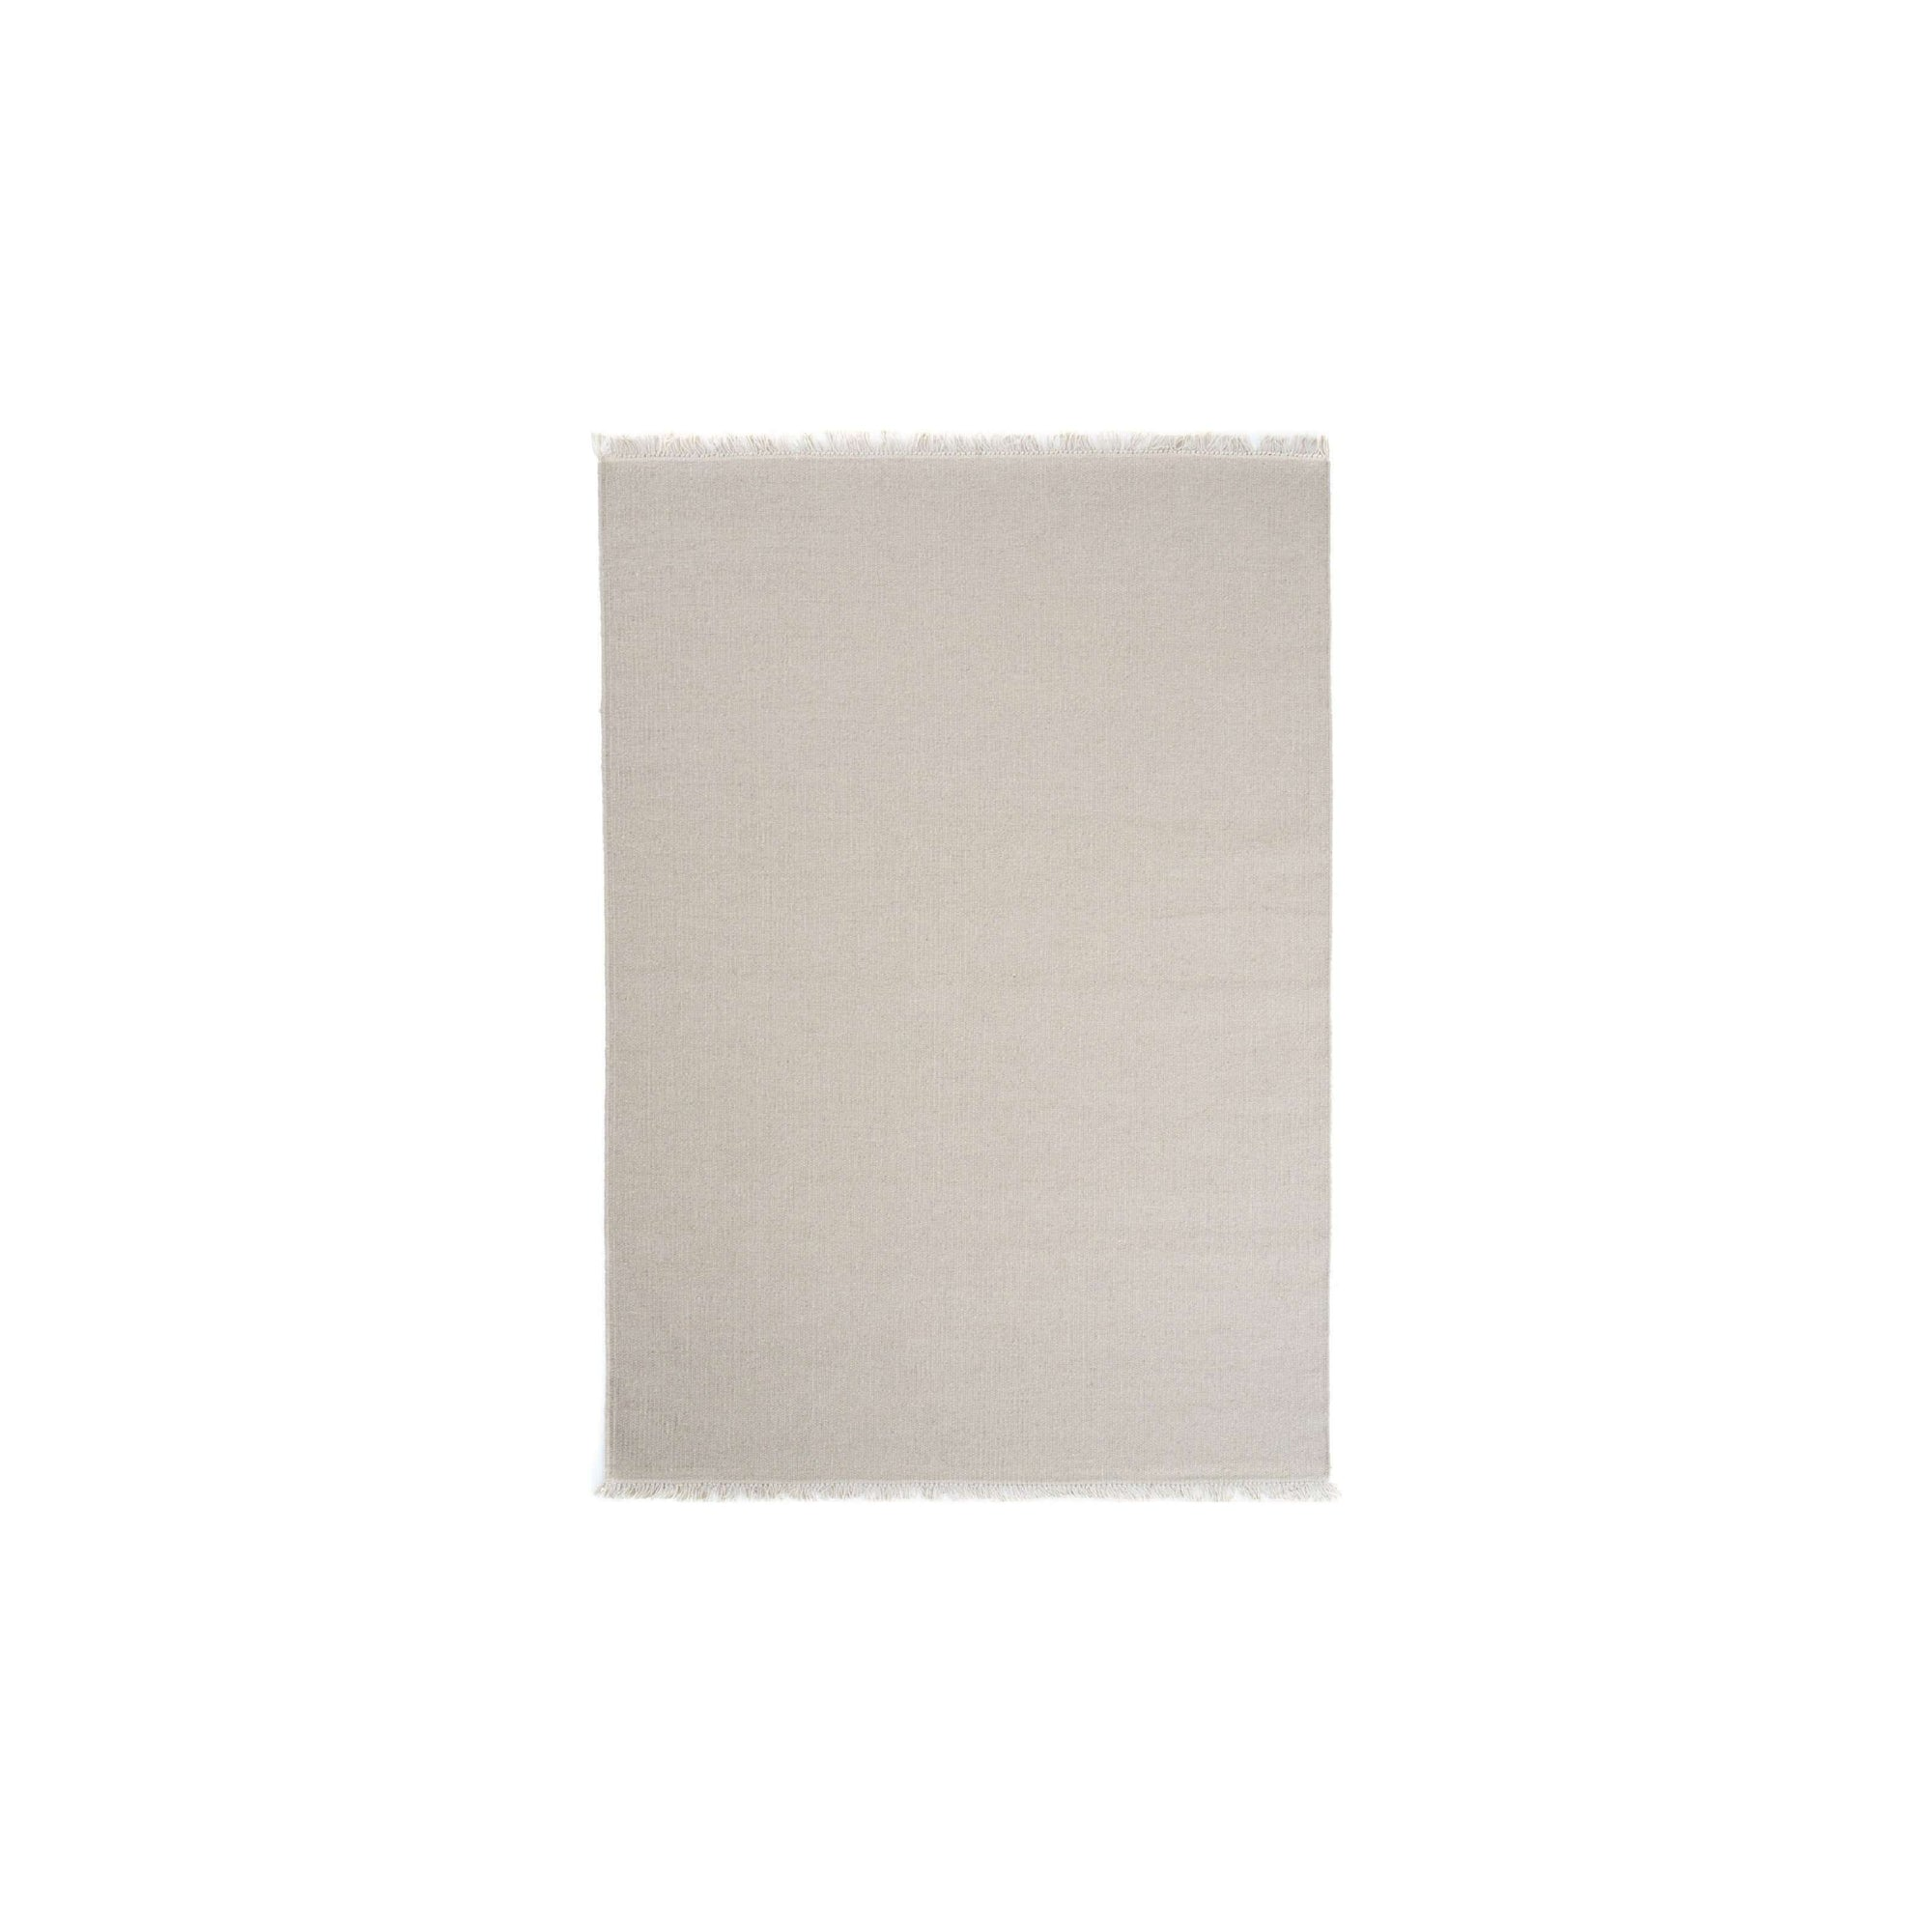 STRINGA 2.4m Rug in Sand Colour